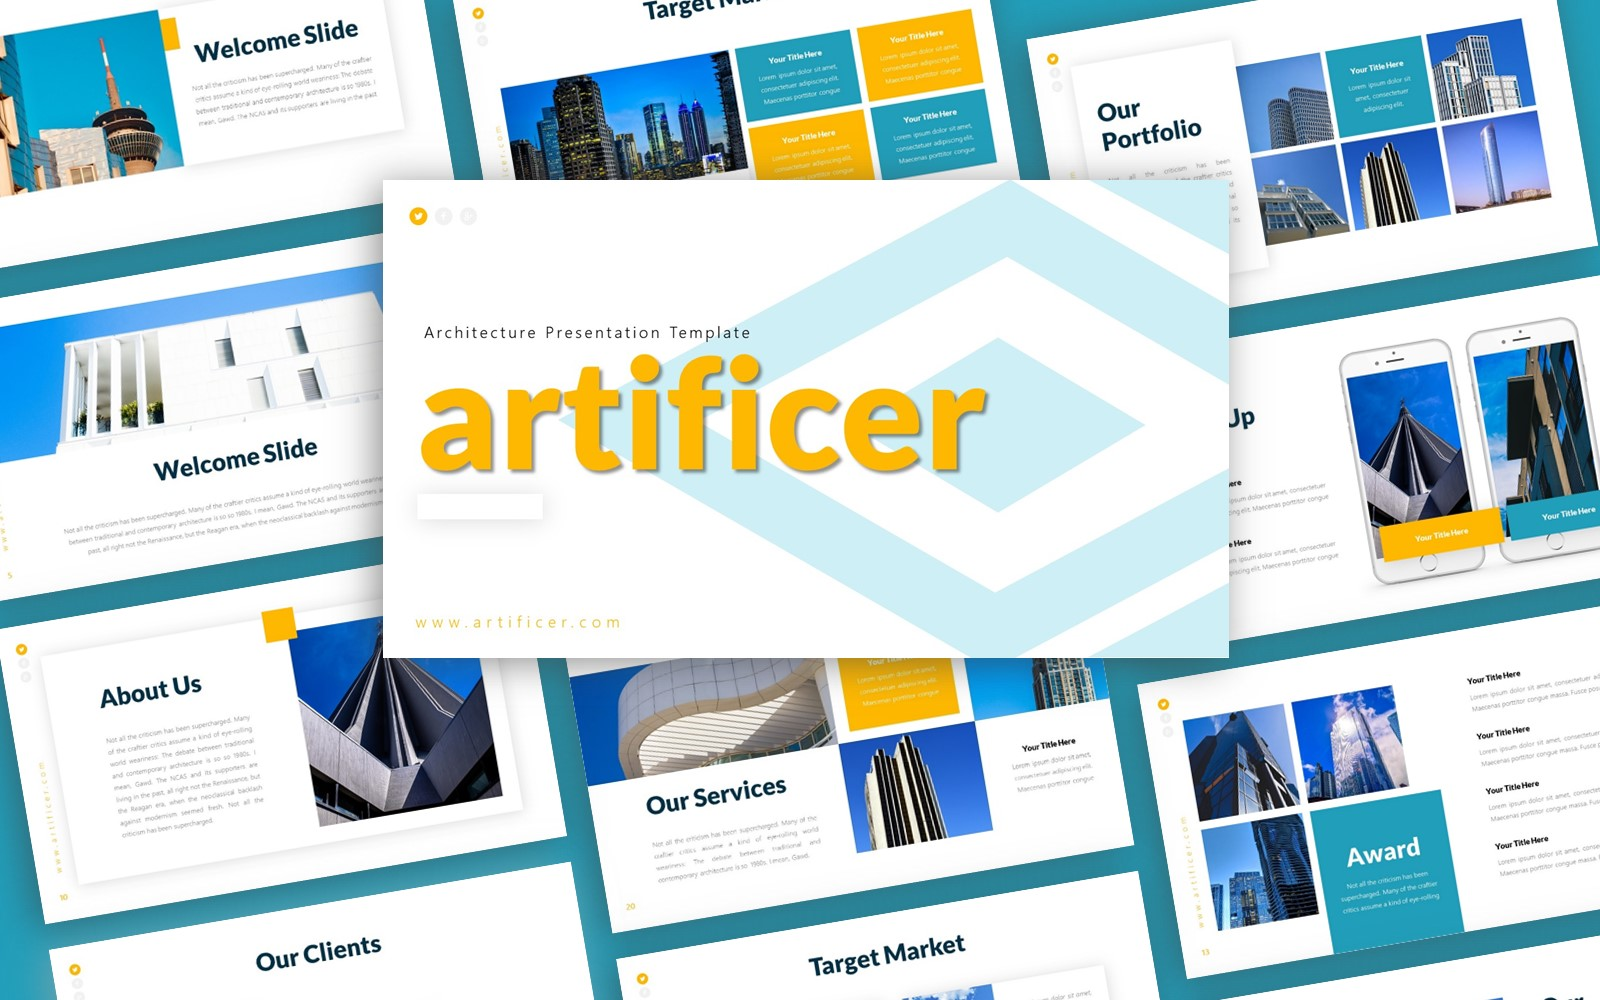 Artificer Architecture Presentation PowerPoint Template